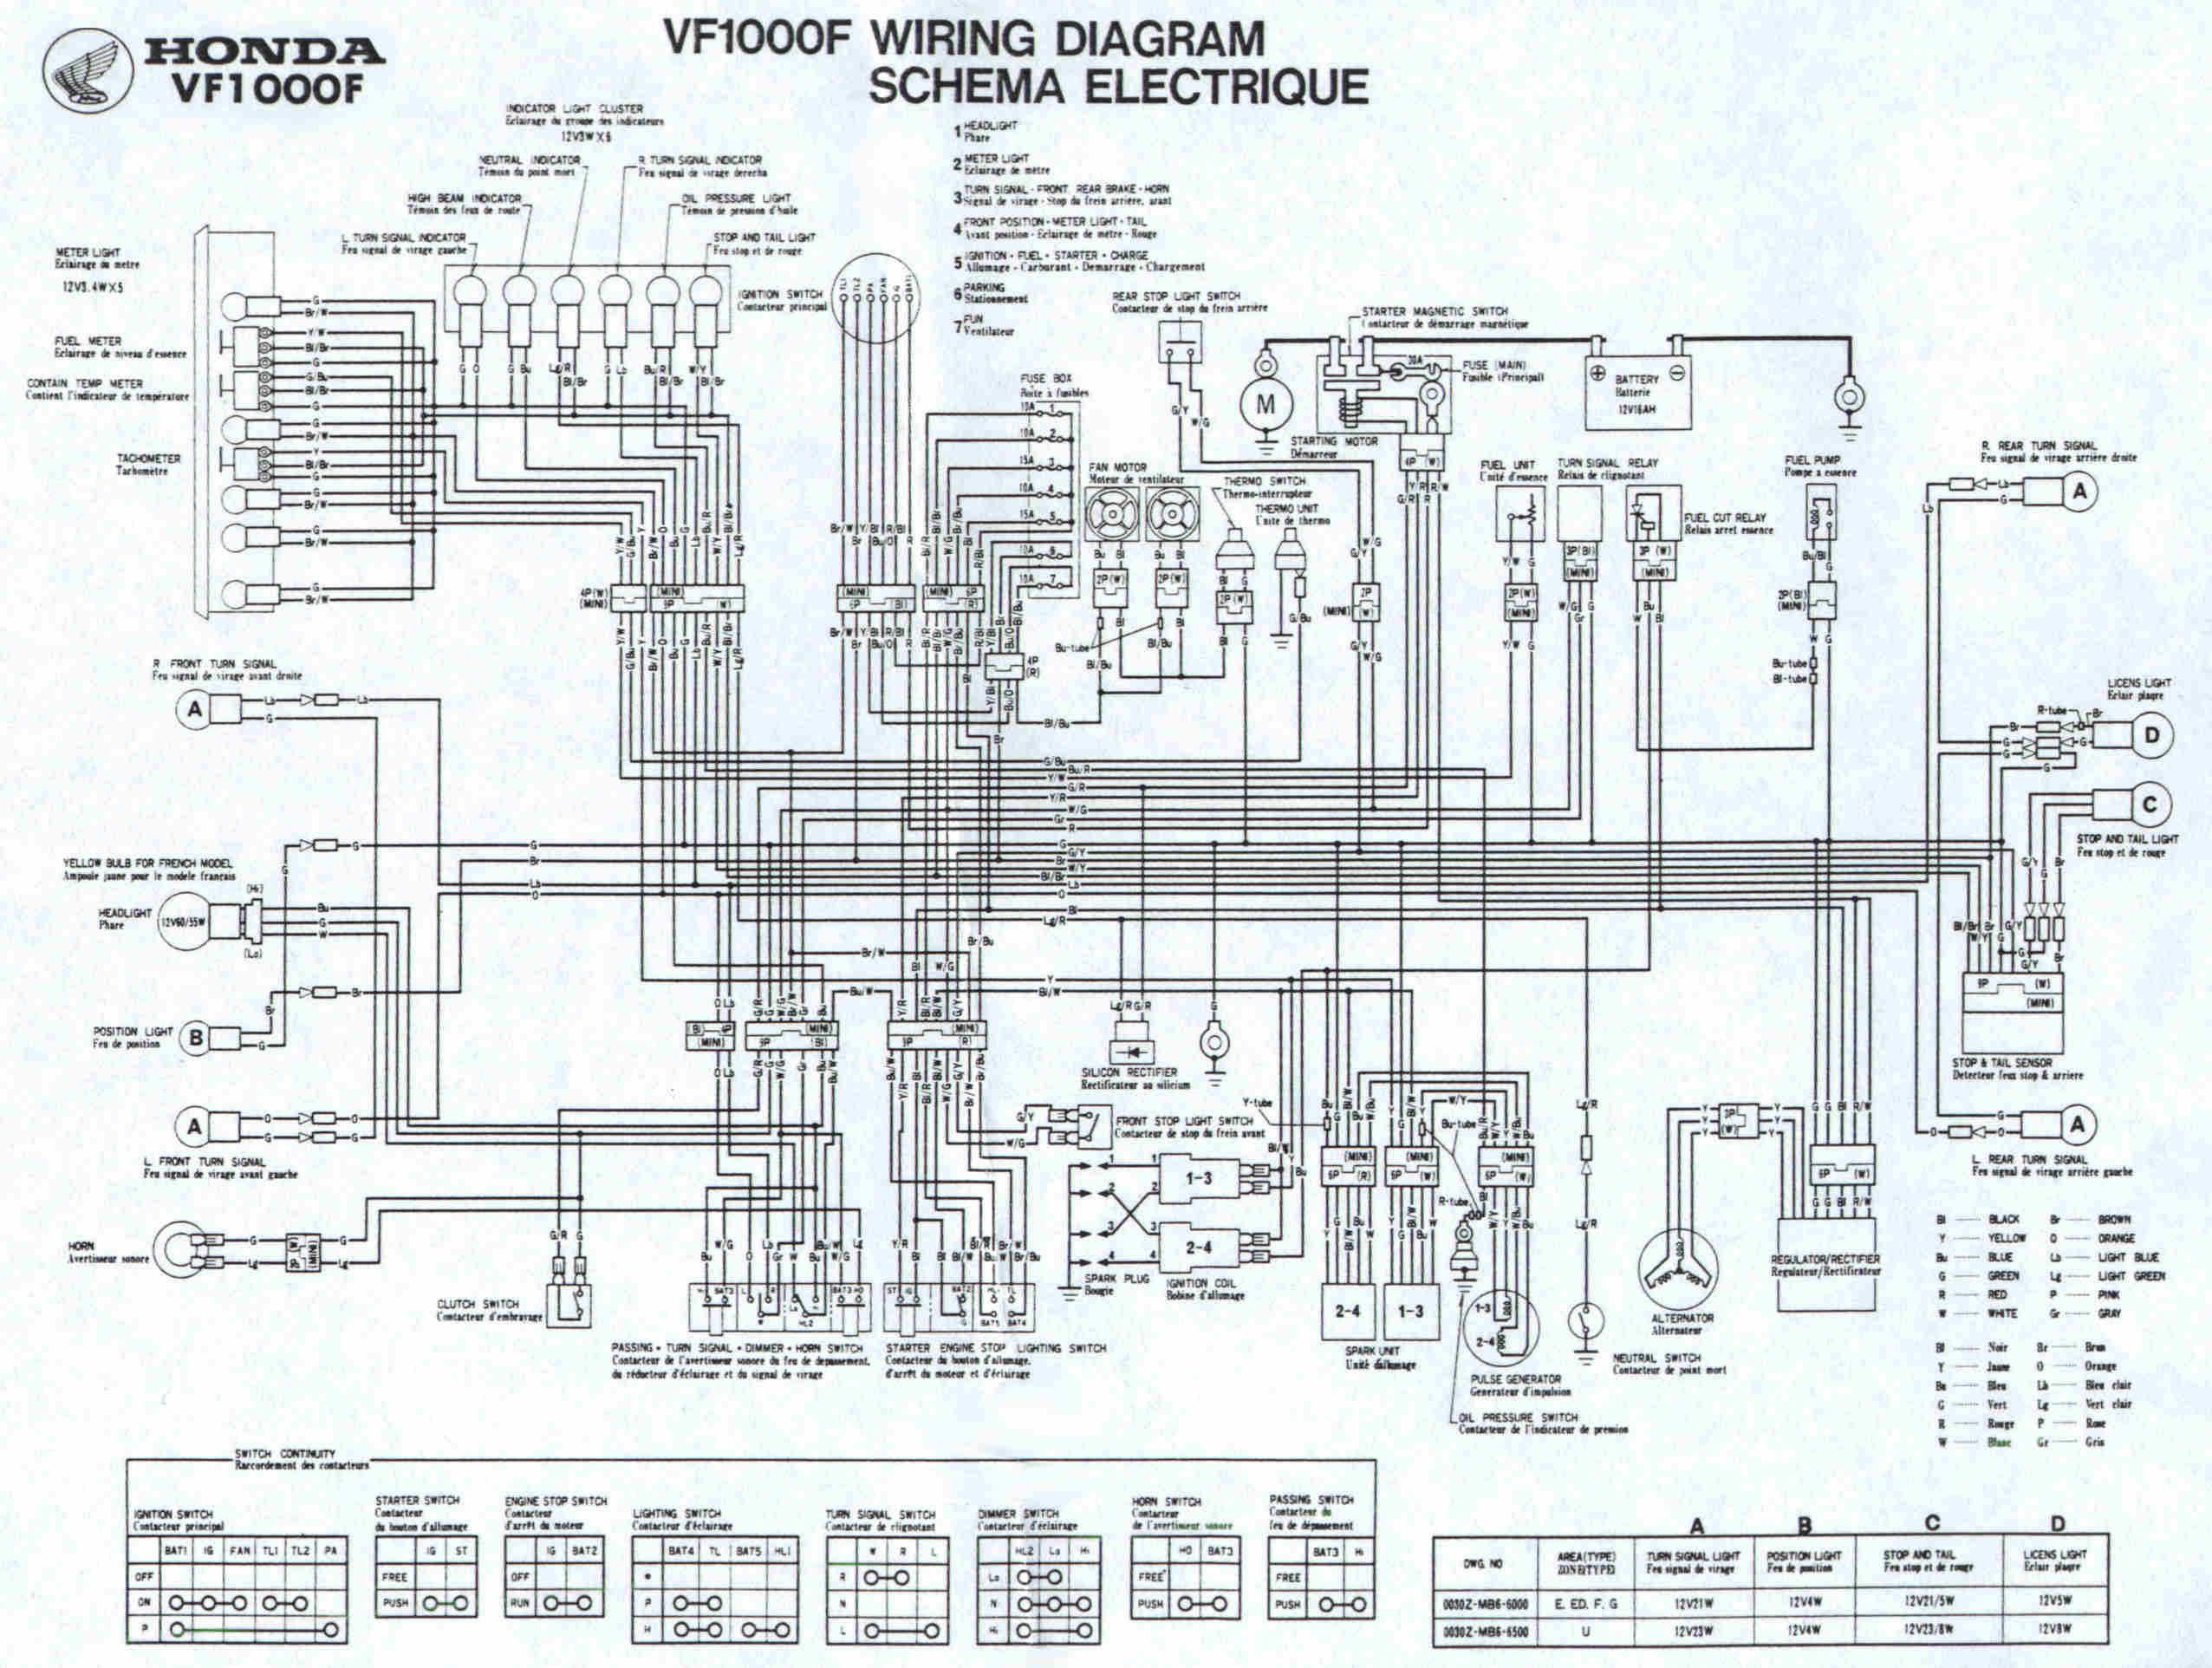 1996 Ktm 300 Exc Wiring Diagram Will Be A Thing 200 Images Gallery